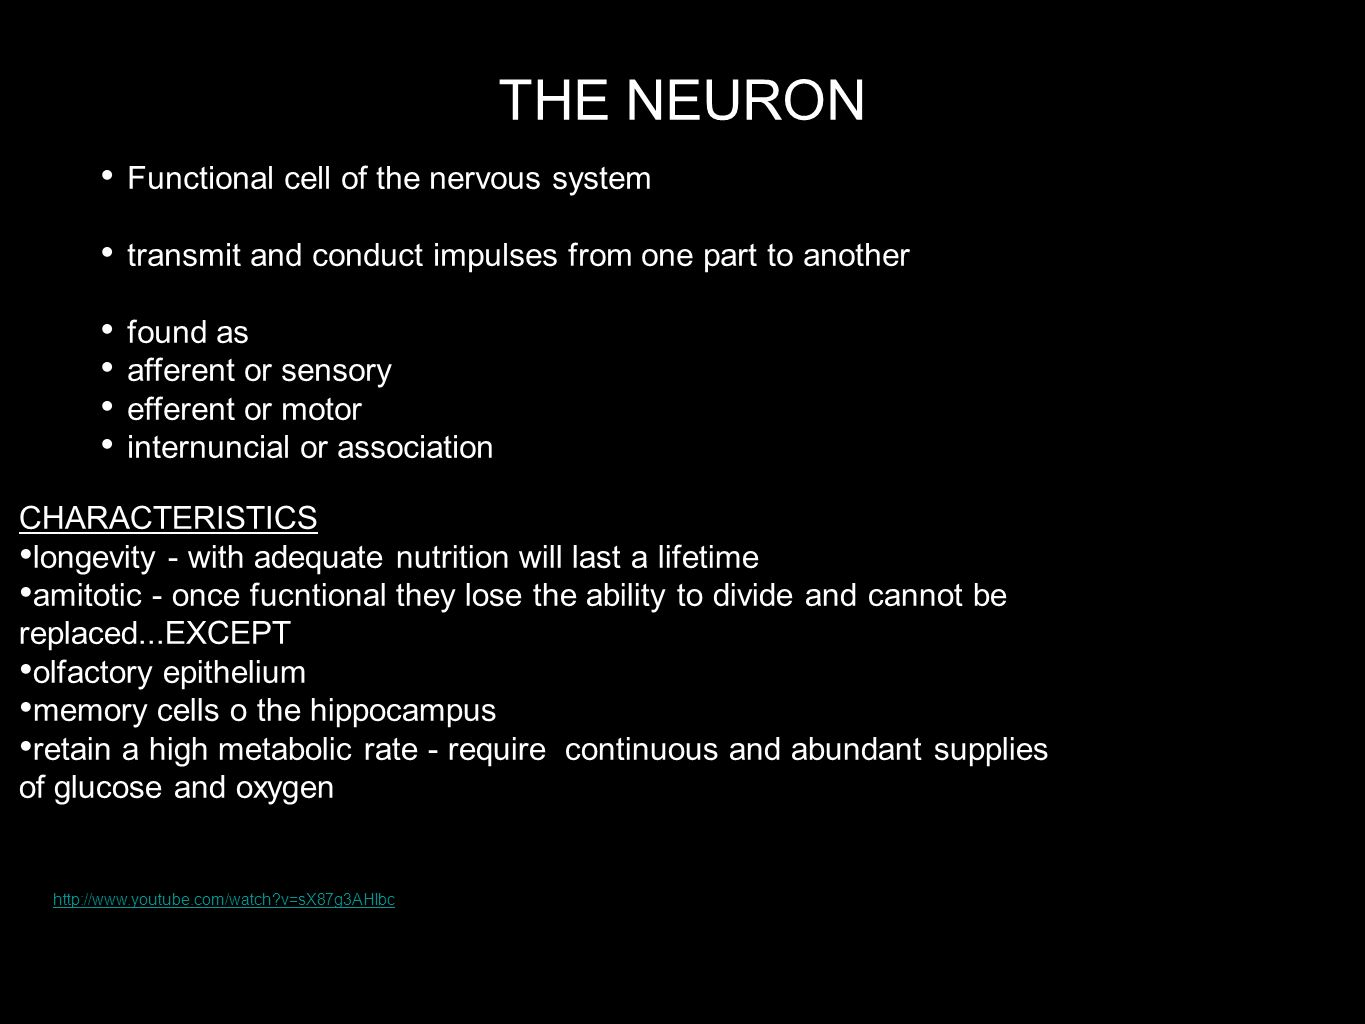 THE NEURON Functional cell of the nervous system transmit and conduct impulses from one part to another found as afferent or sensory efferent or motor